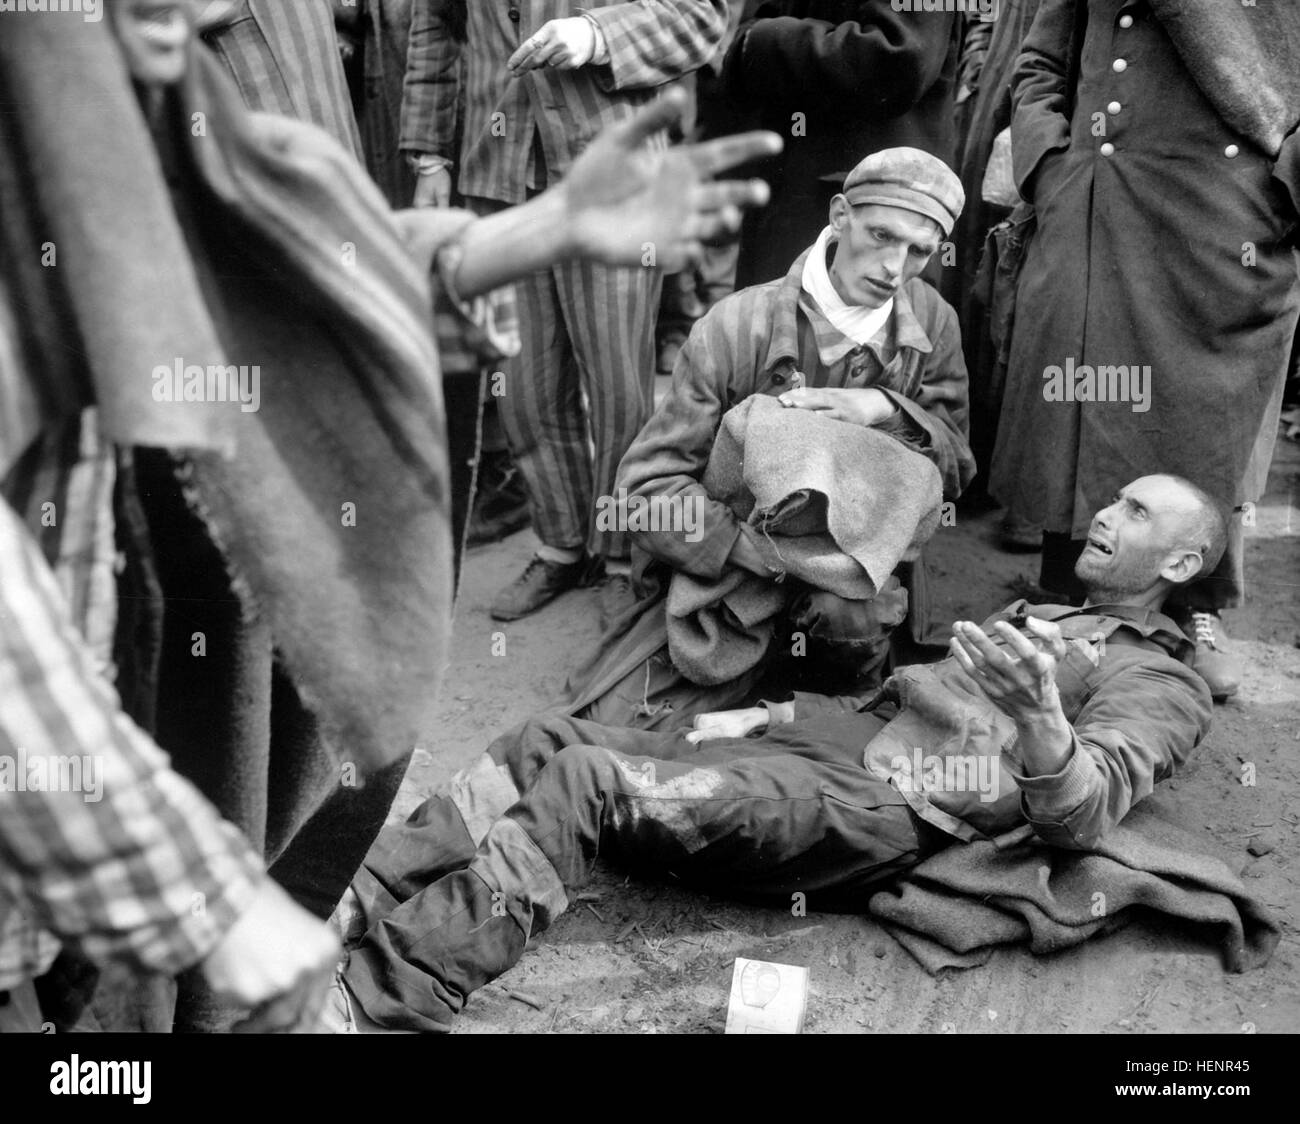 At the German concentration camp at Wobbelin, many inmates were found by the U.S. Ninth Army in pitiful condition. - Stock Image